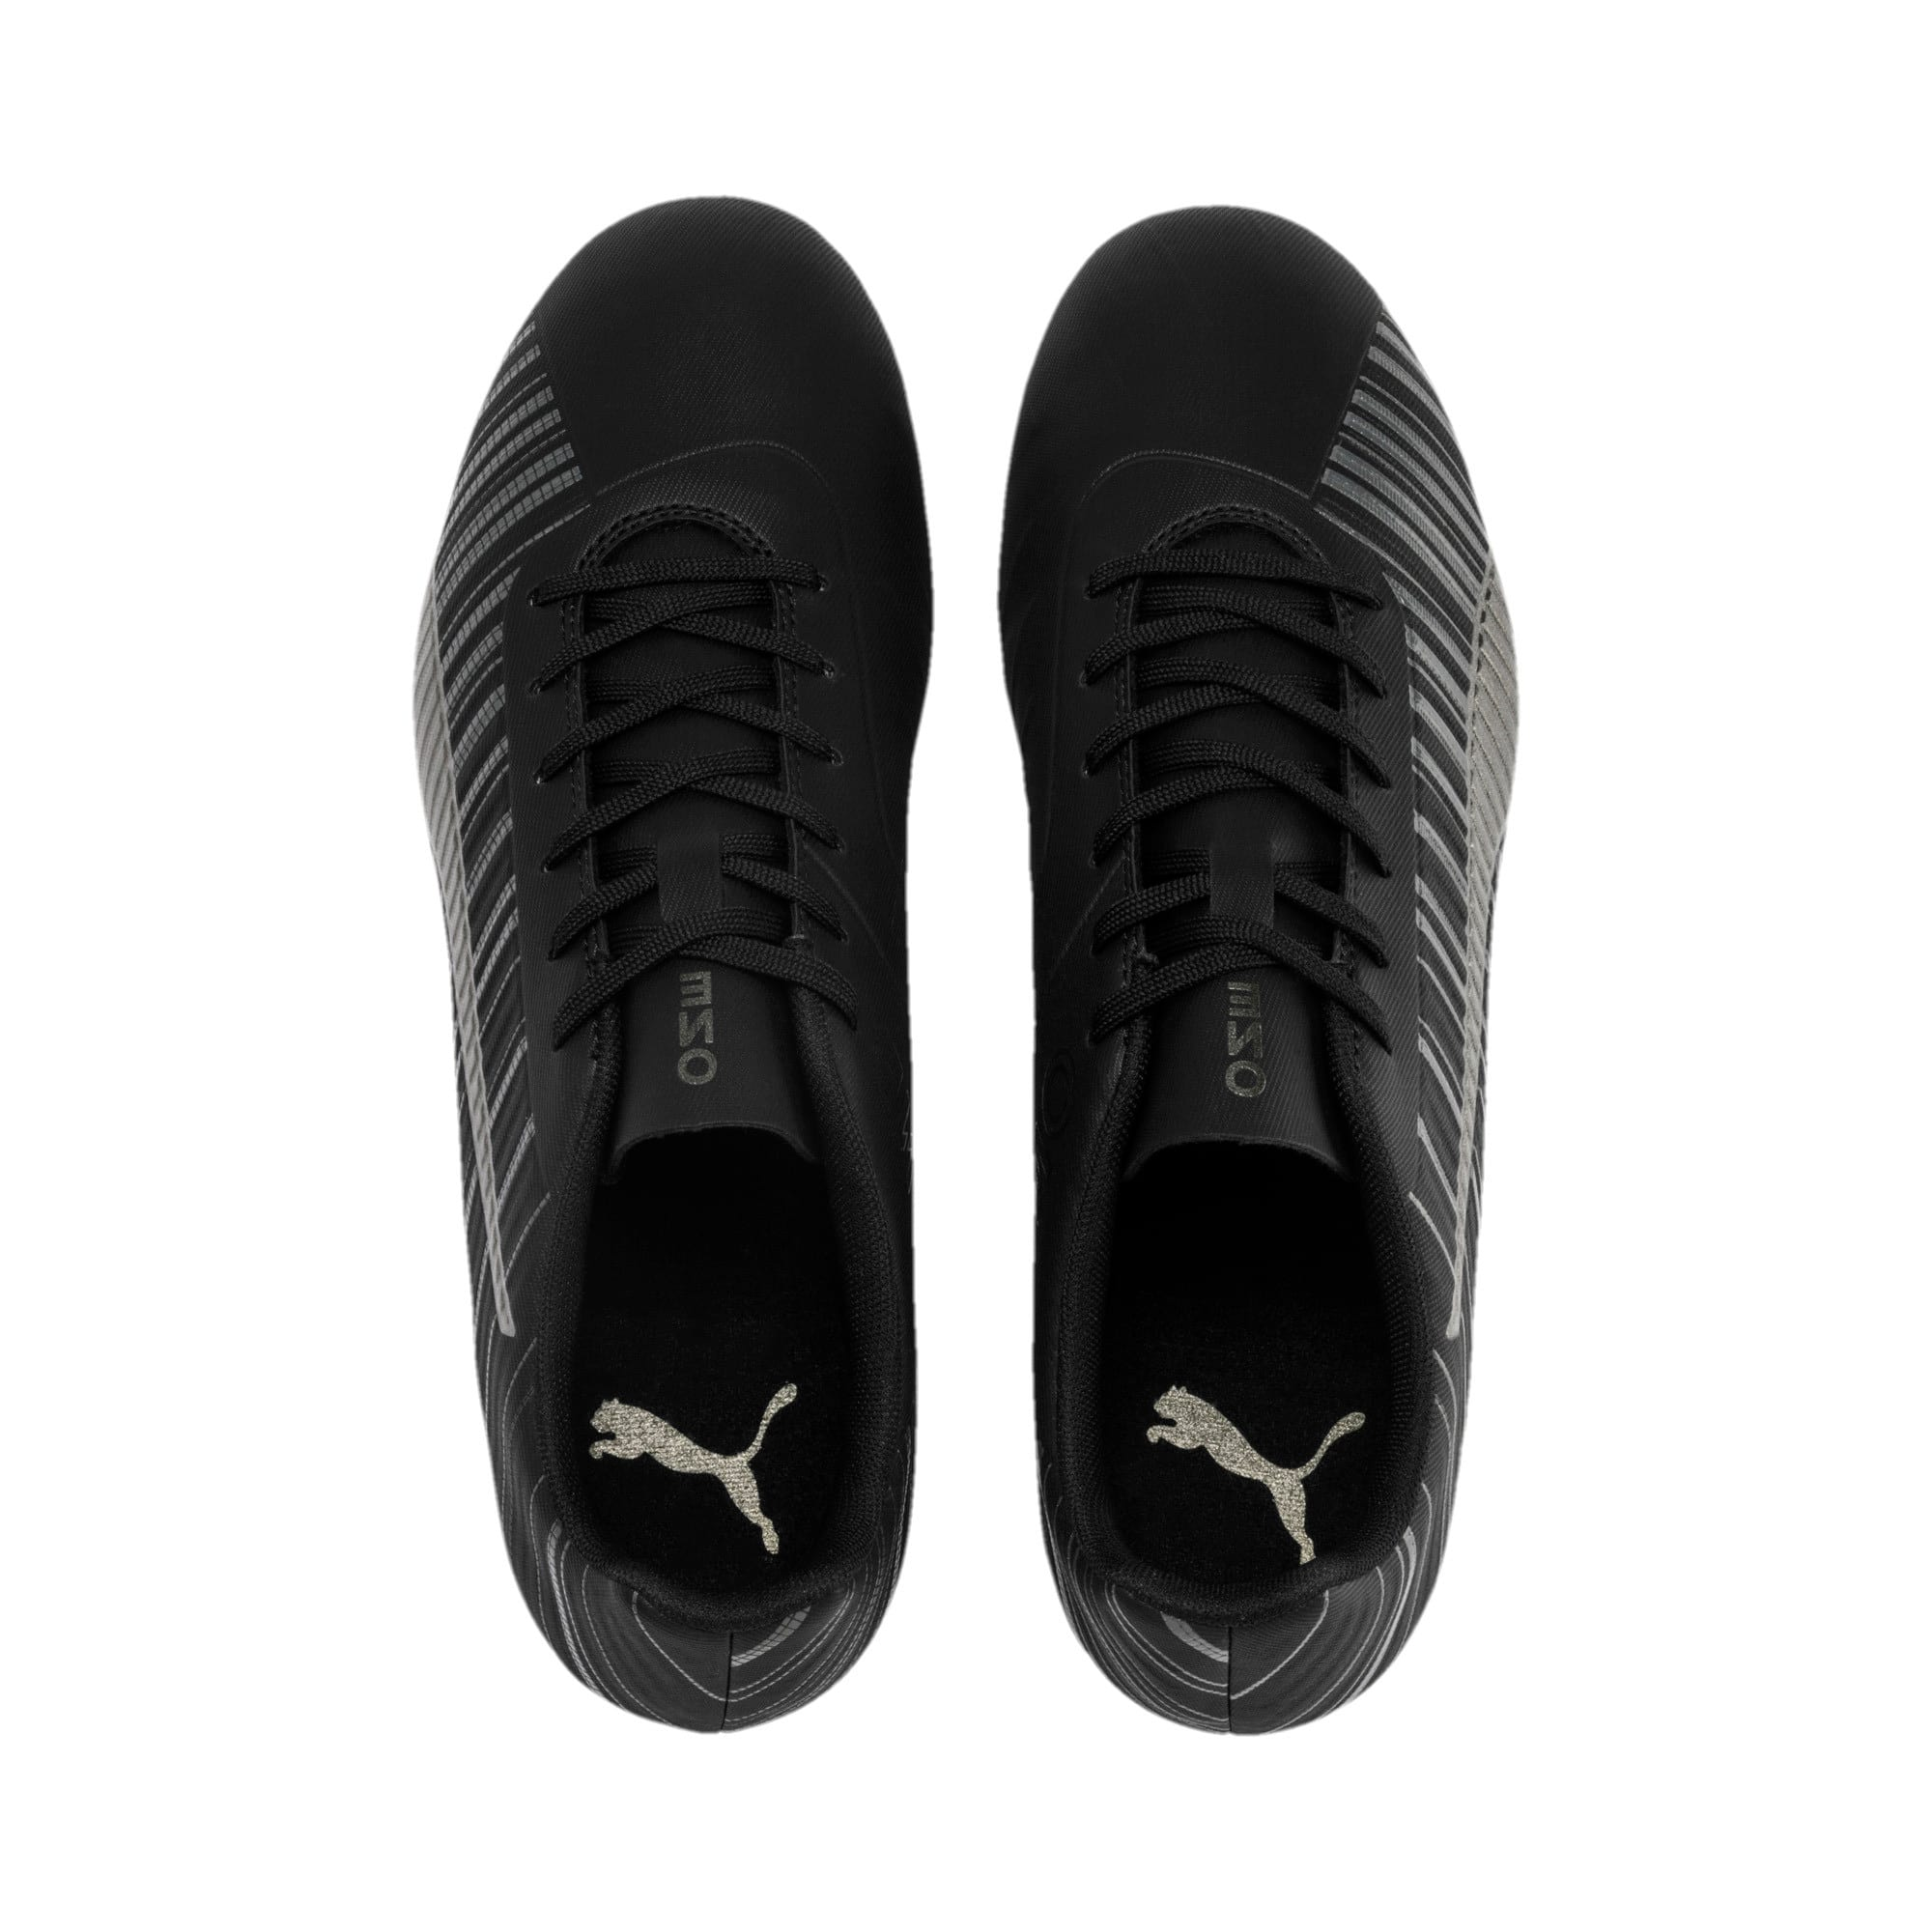 Thumbnail 8 of PUMA ONE 5.4 Men's FG/AG Football Boots, Black-Black-Puma Aged Silver, medium-IND